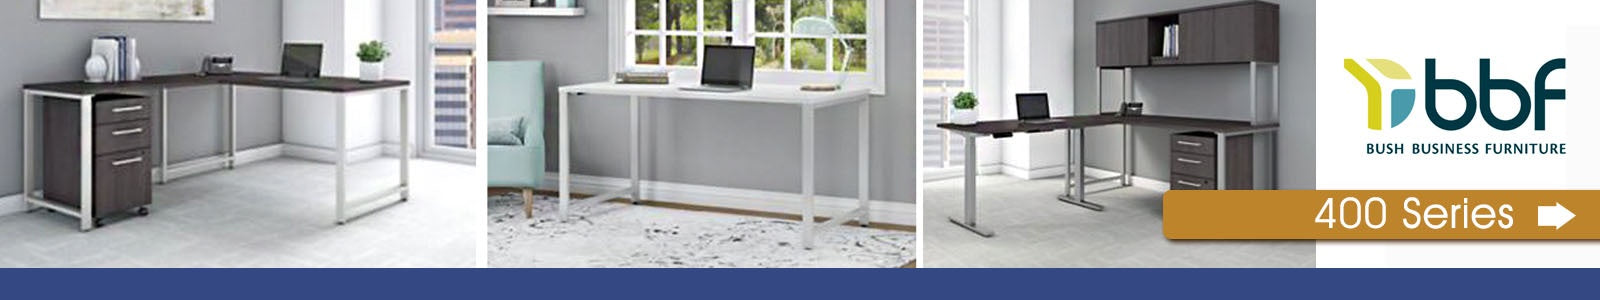 Bush Businss Furniture 400 Series Banner Image